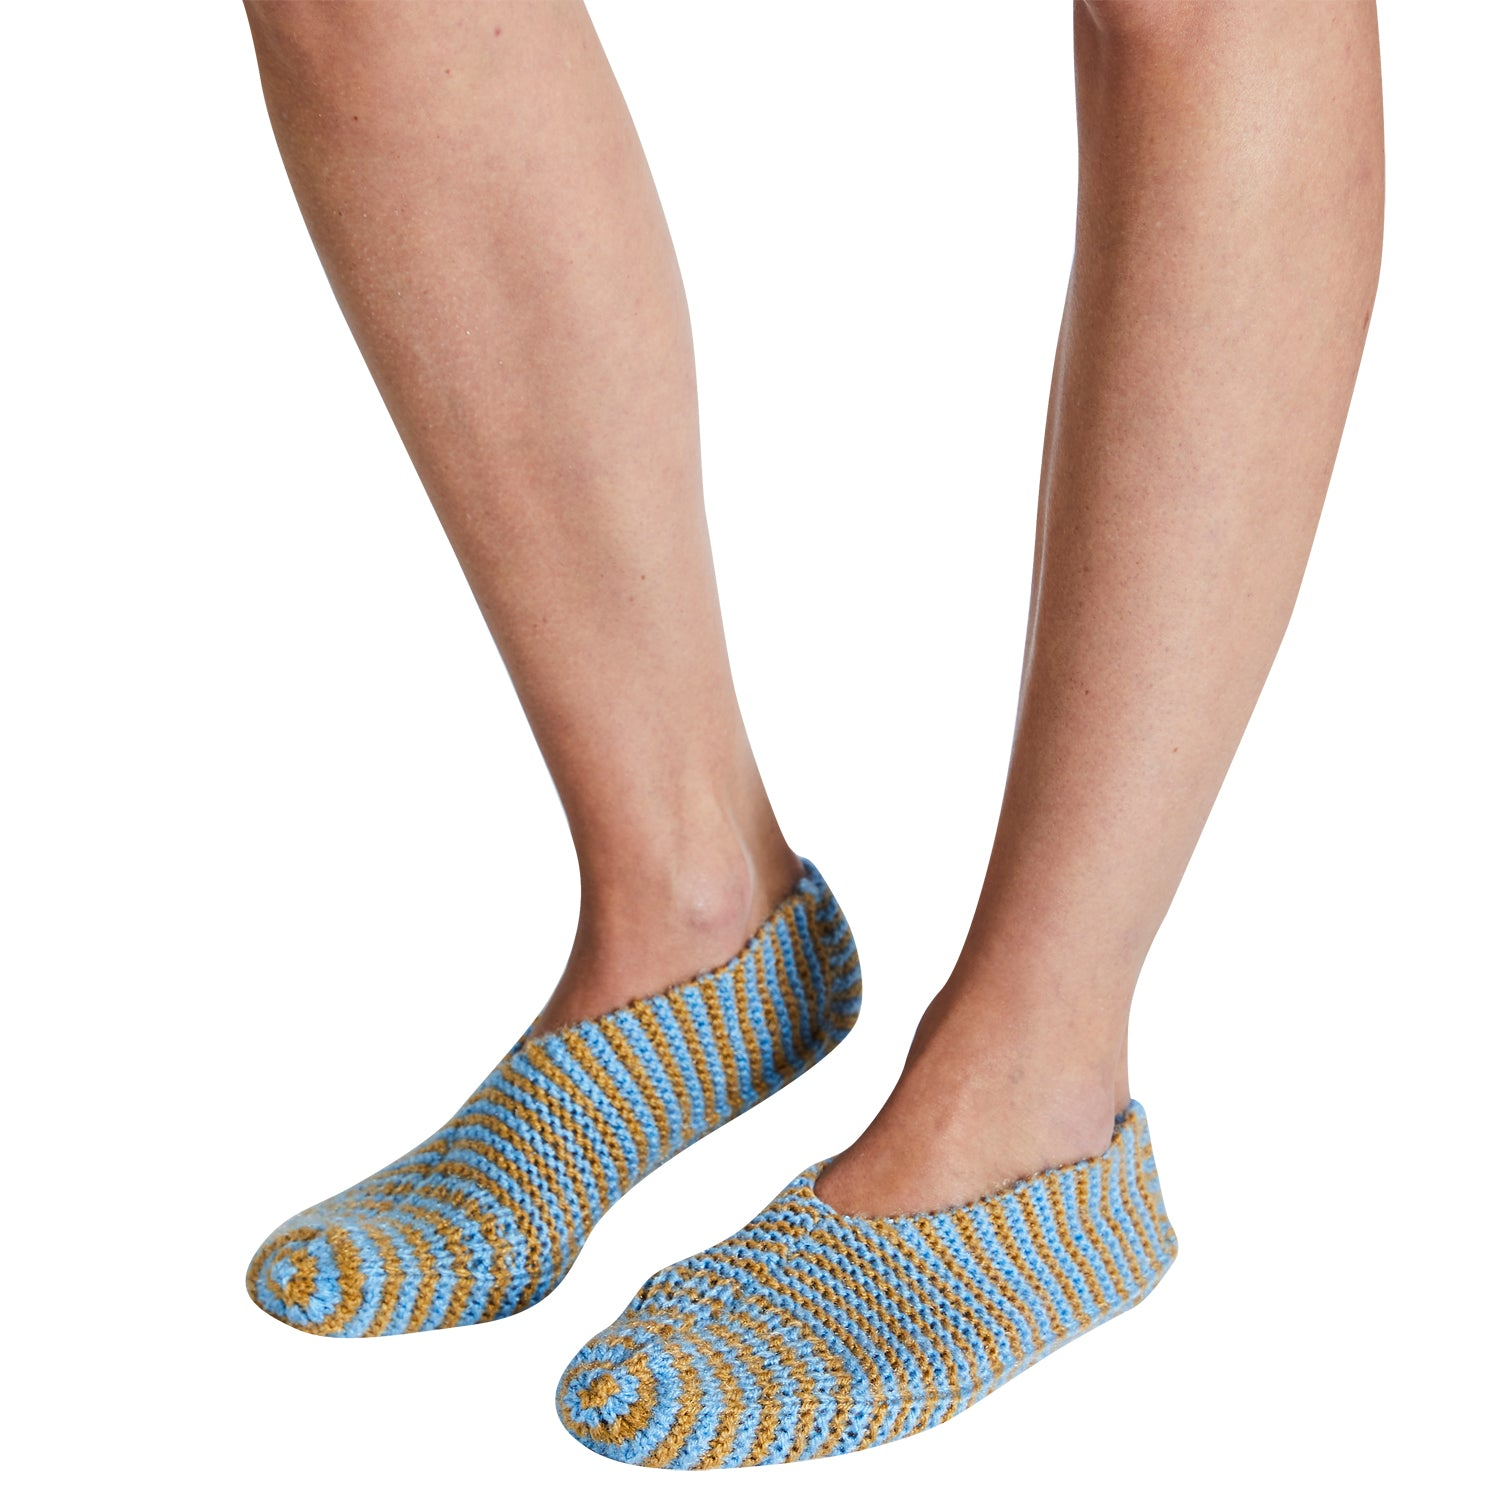 Yoki house socks knitted blue ochre tobacco short striped